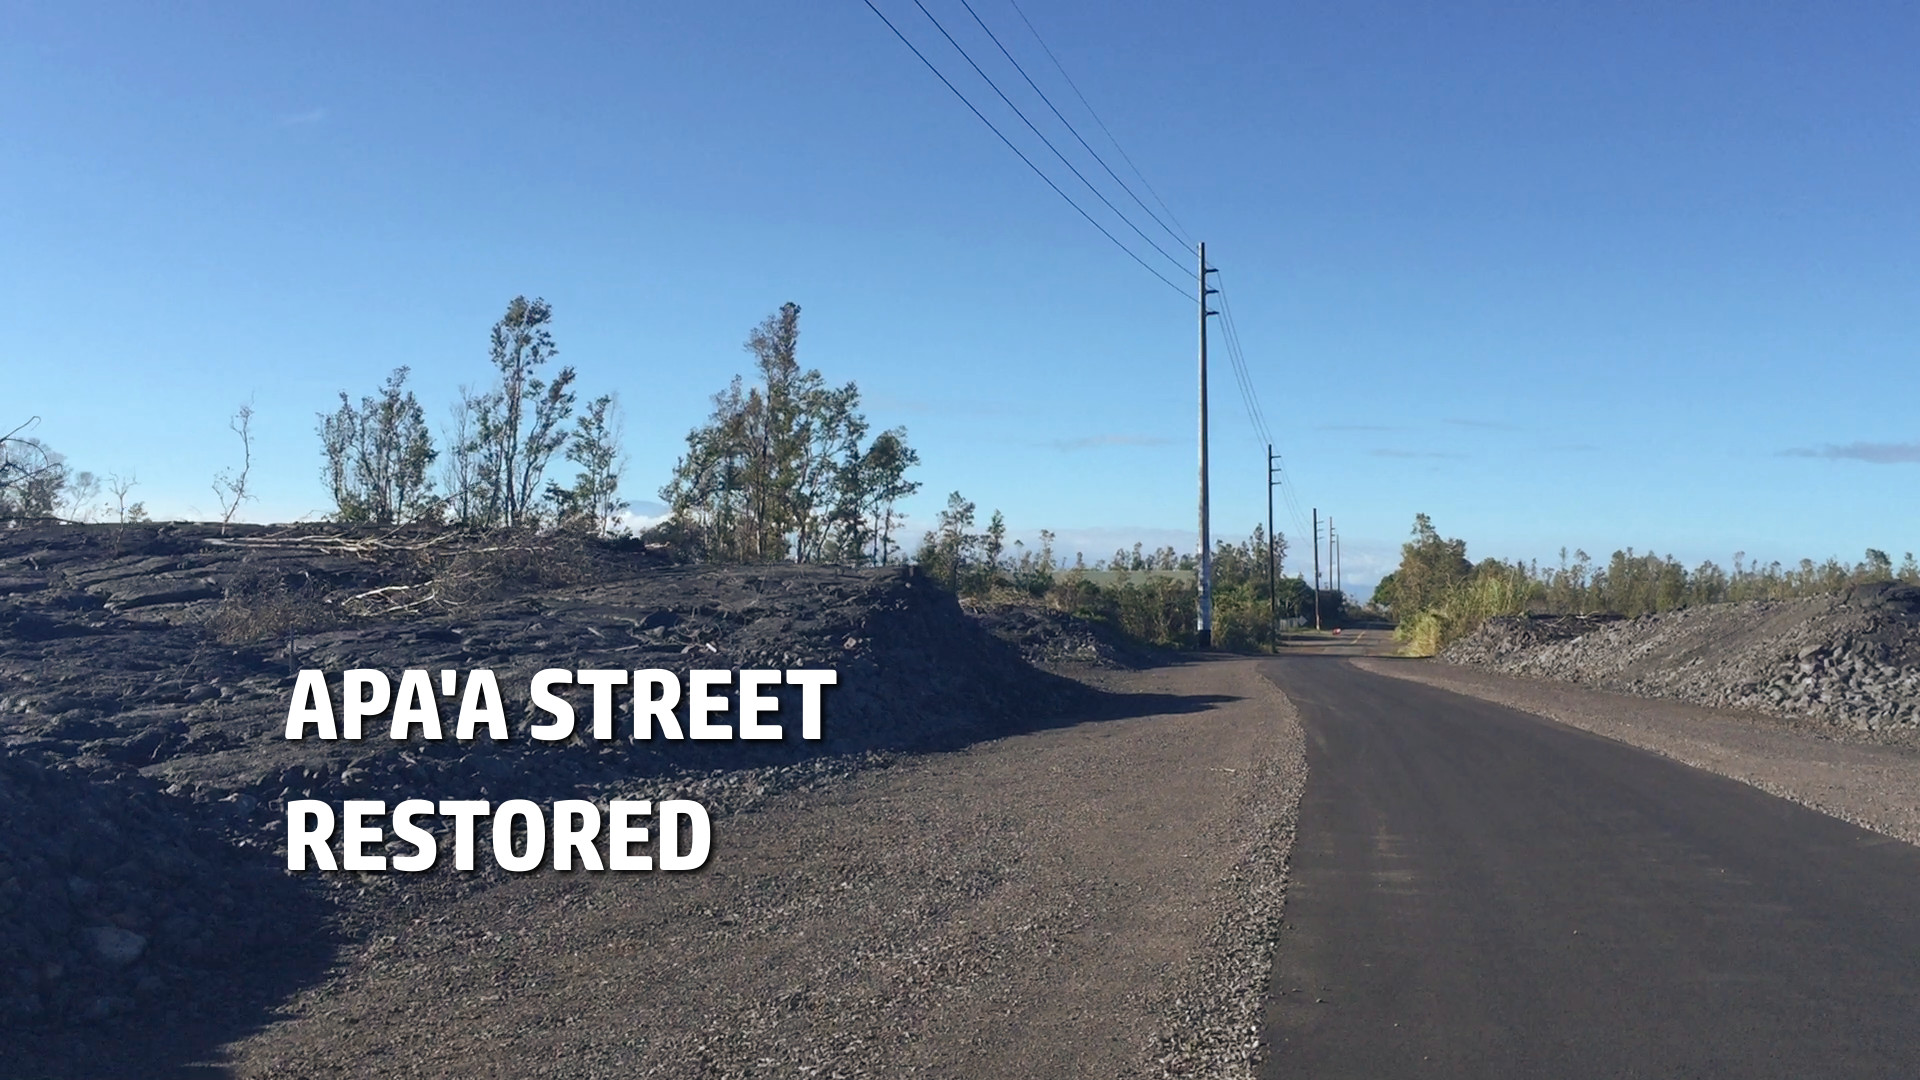 VIDEO: Pahoa's Apaa Street Restored Following 2014 Lava Flow